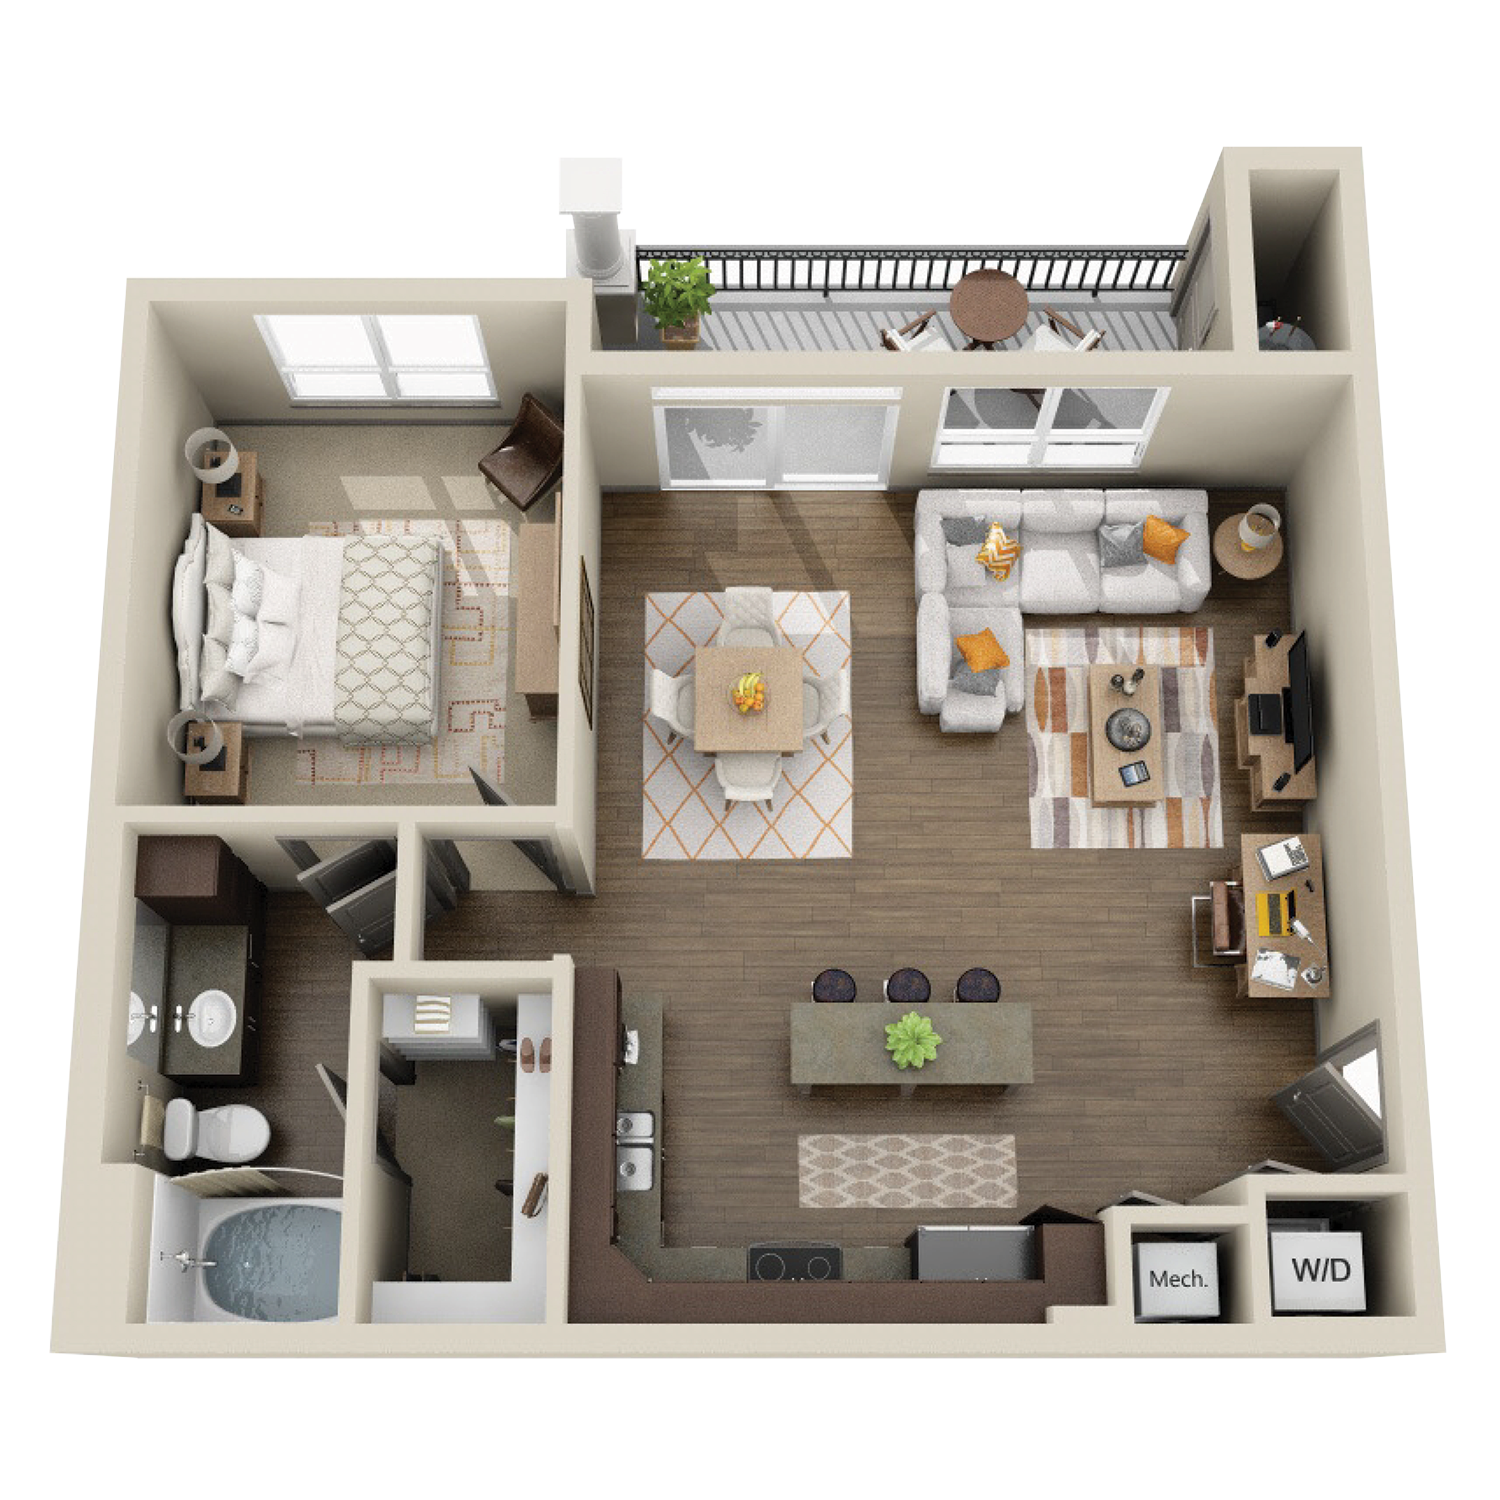 A3A floor plan featuring 1 bed and 1 bath